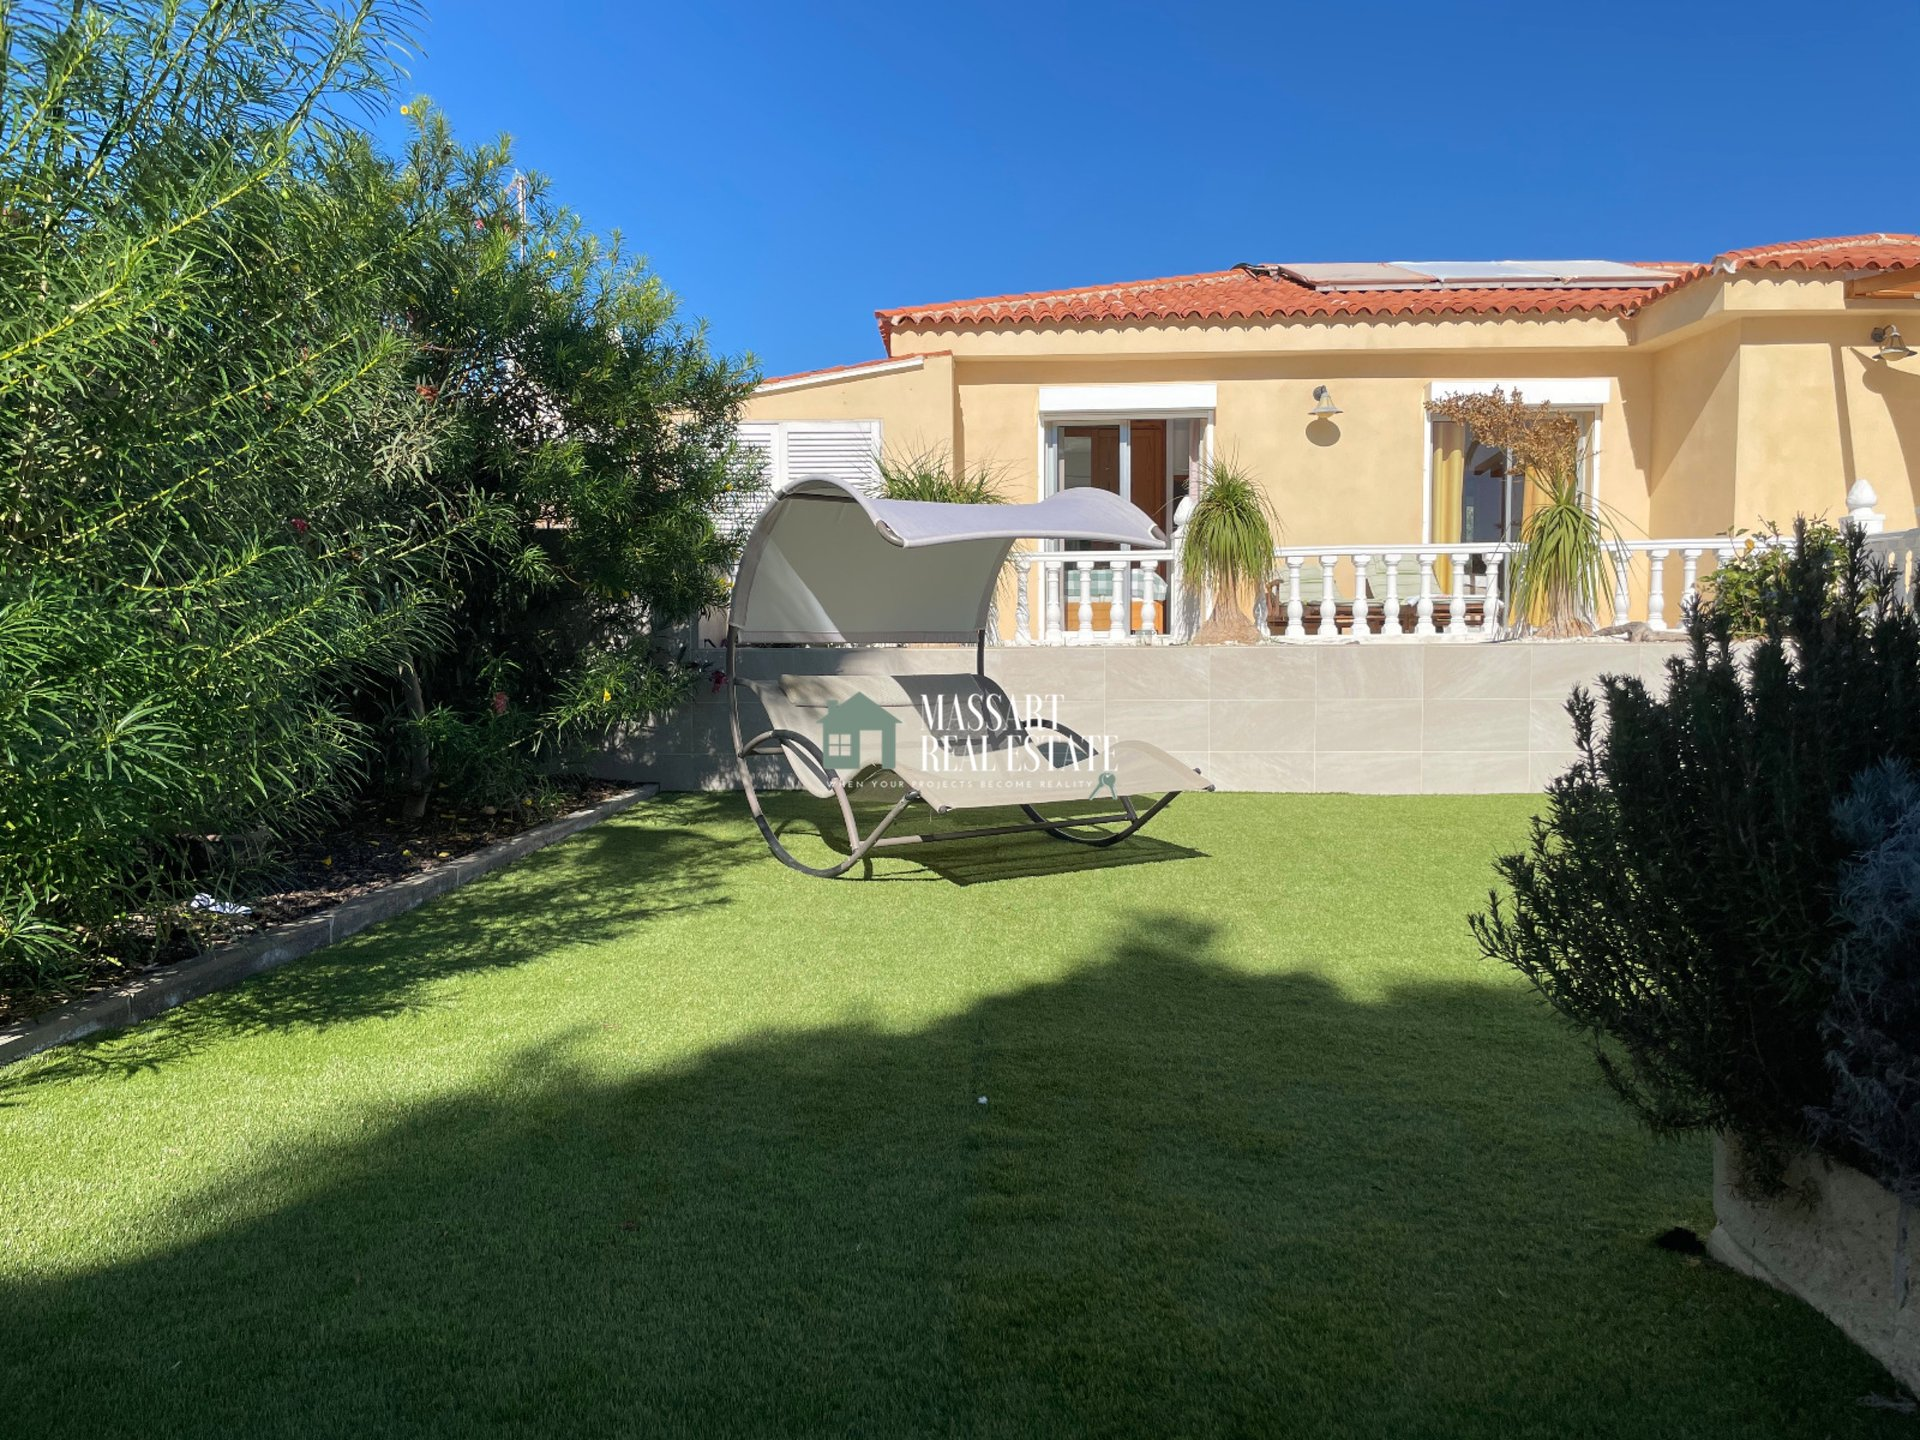 Beautiful villa located on a 480 m2 plot in an area of absolute tranquility in Callao Salvaje ... just 200 meters from the sea!